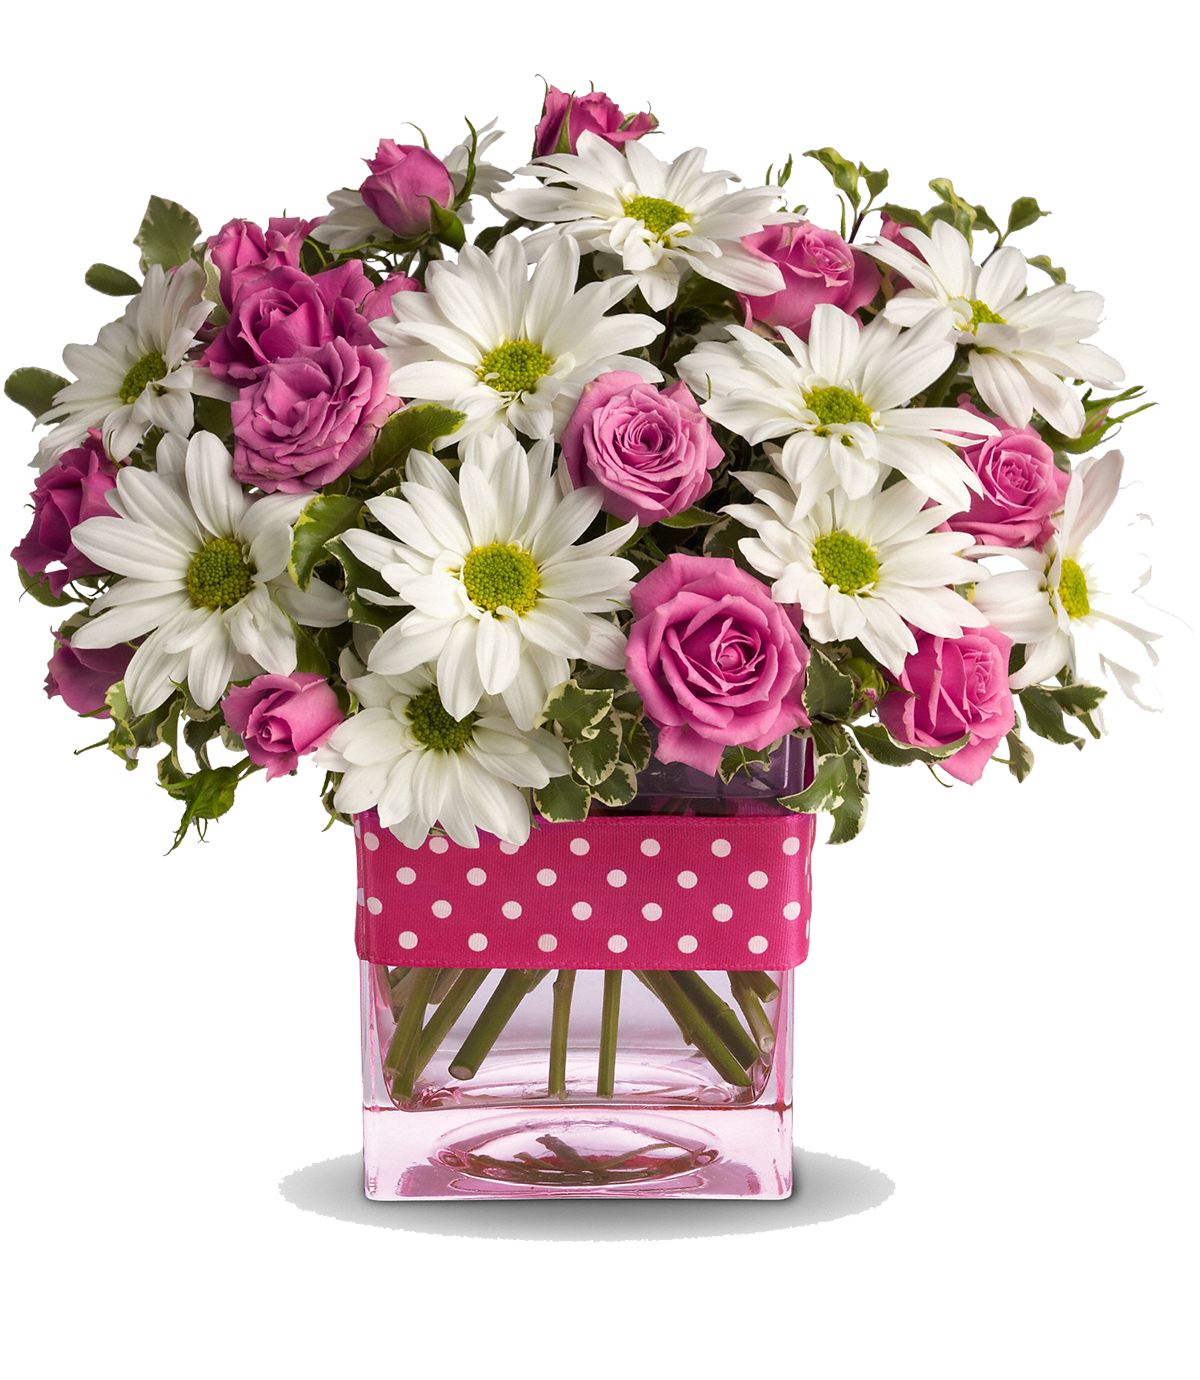 Congratulation flower images all. Transparent png flowers graphic black and white library